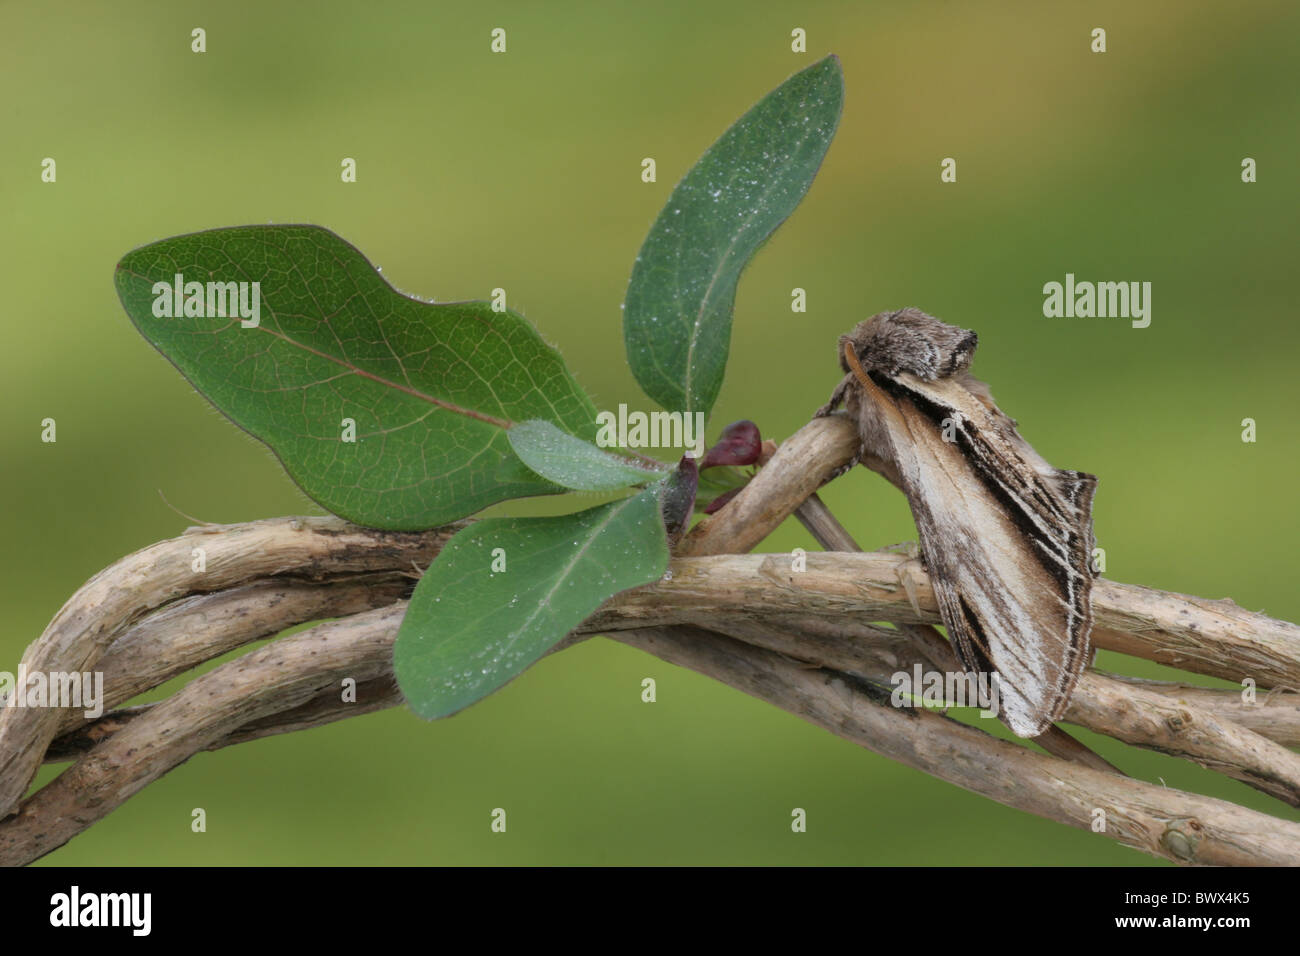 Swallow Prominent (Pheosia tremula) adult, resting on Honeysuckle (Lonicera periclymenum) stem, with raindrops on - Stock Image